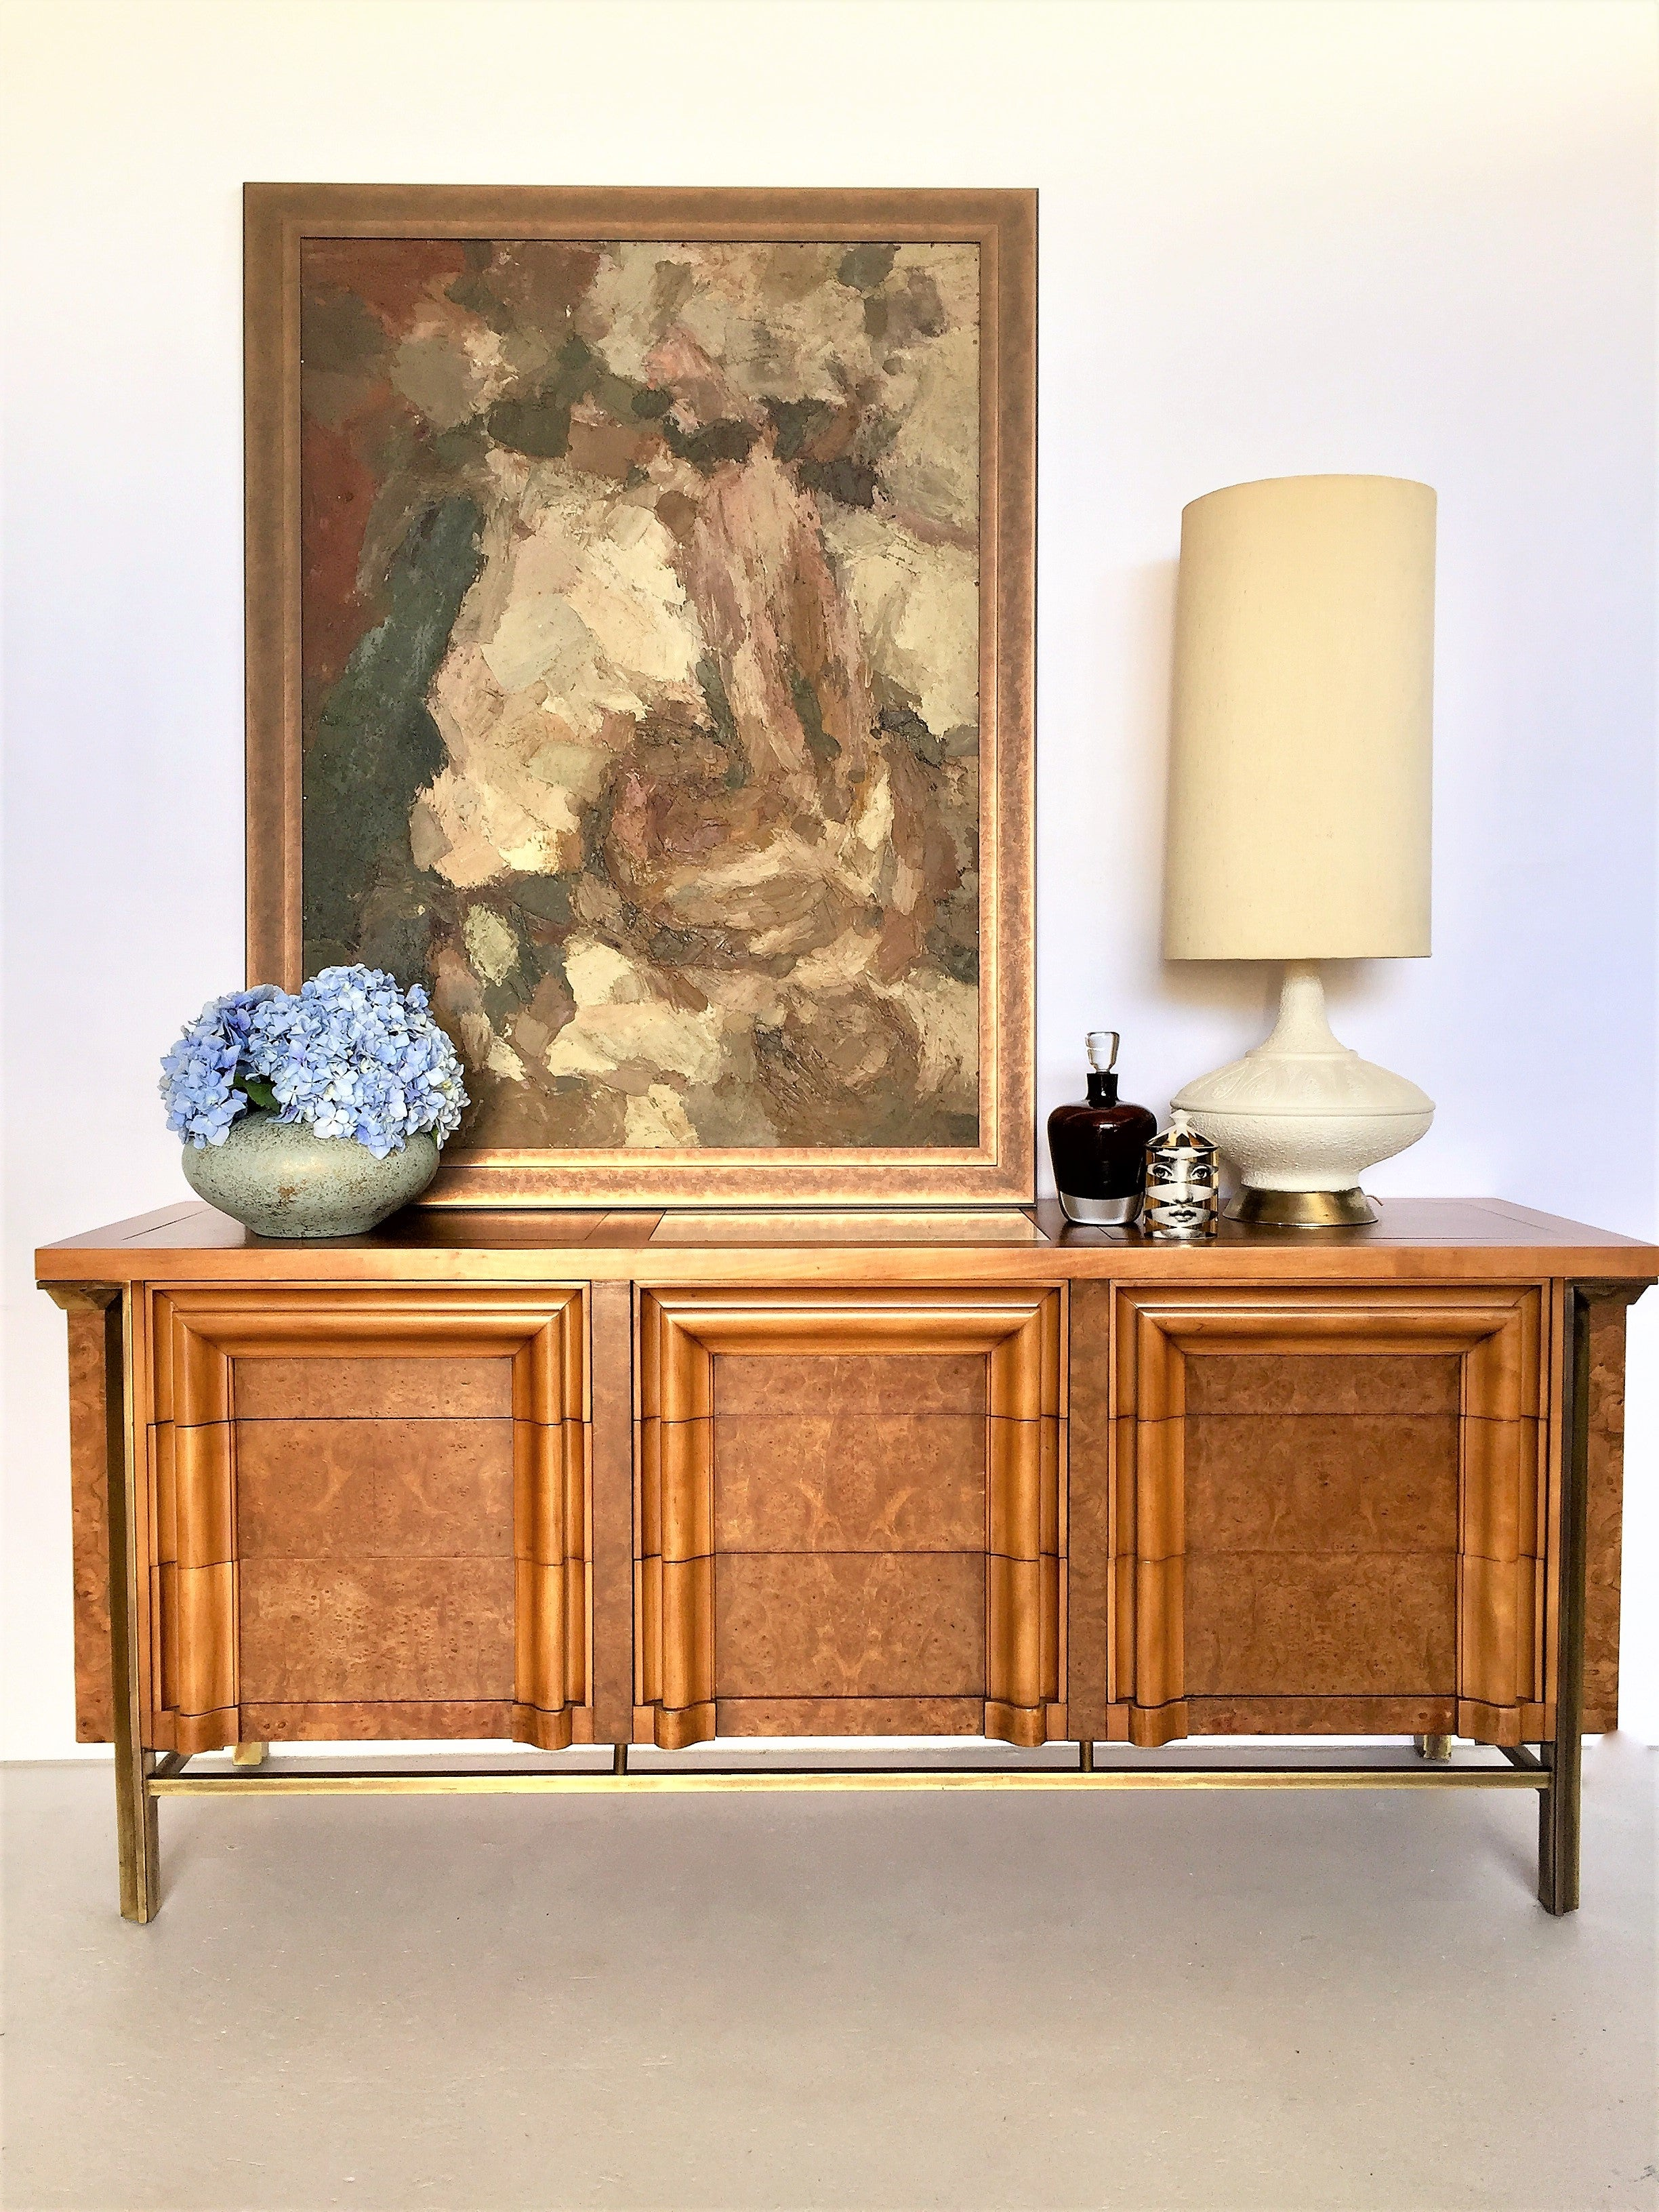 American Burled Cherrywood And Solid Brass Dresser By JL Metz Furniture